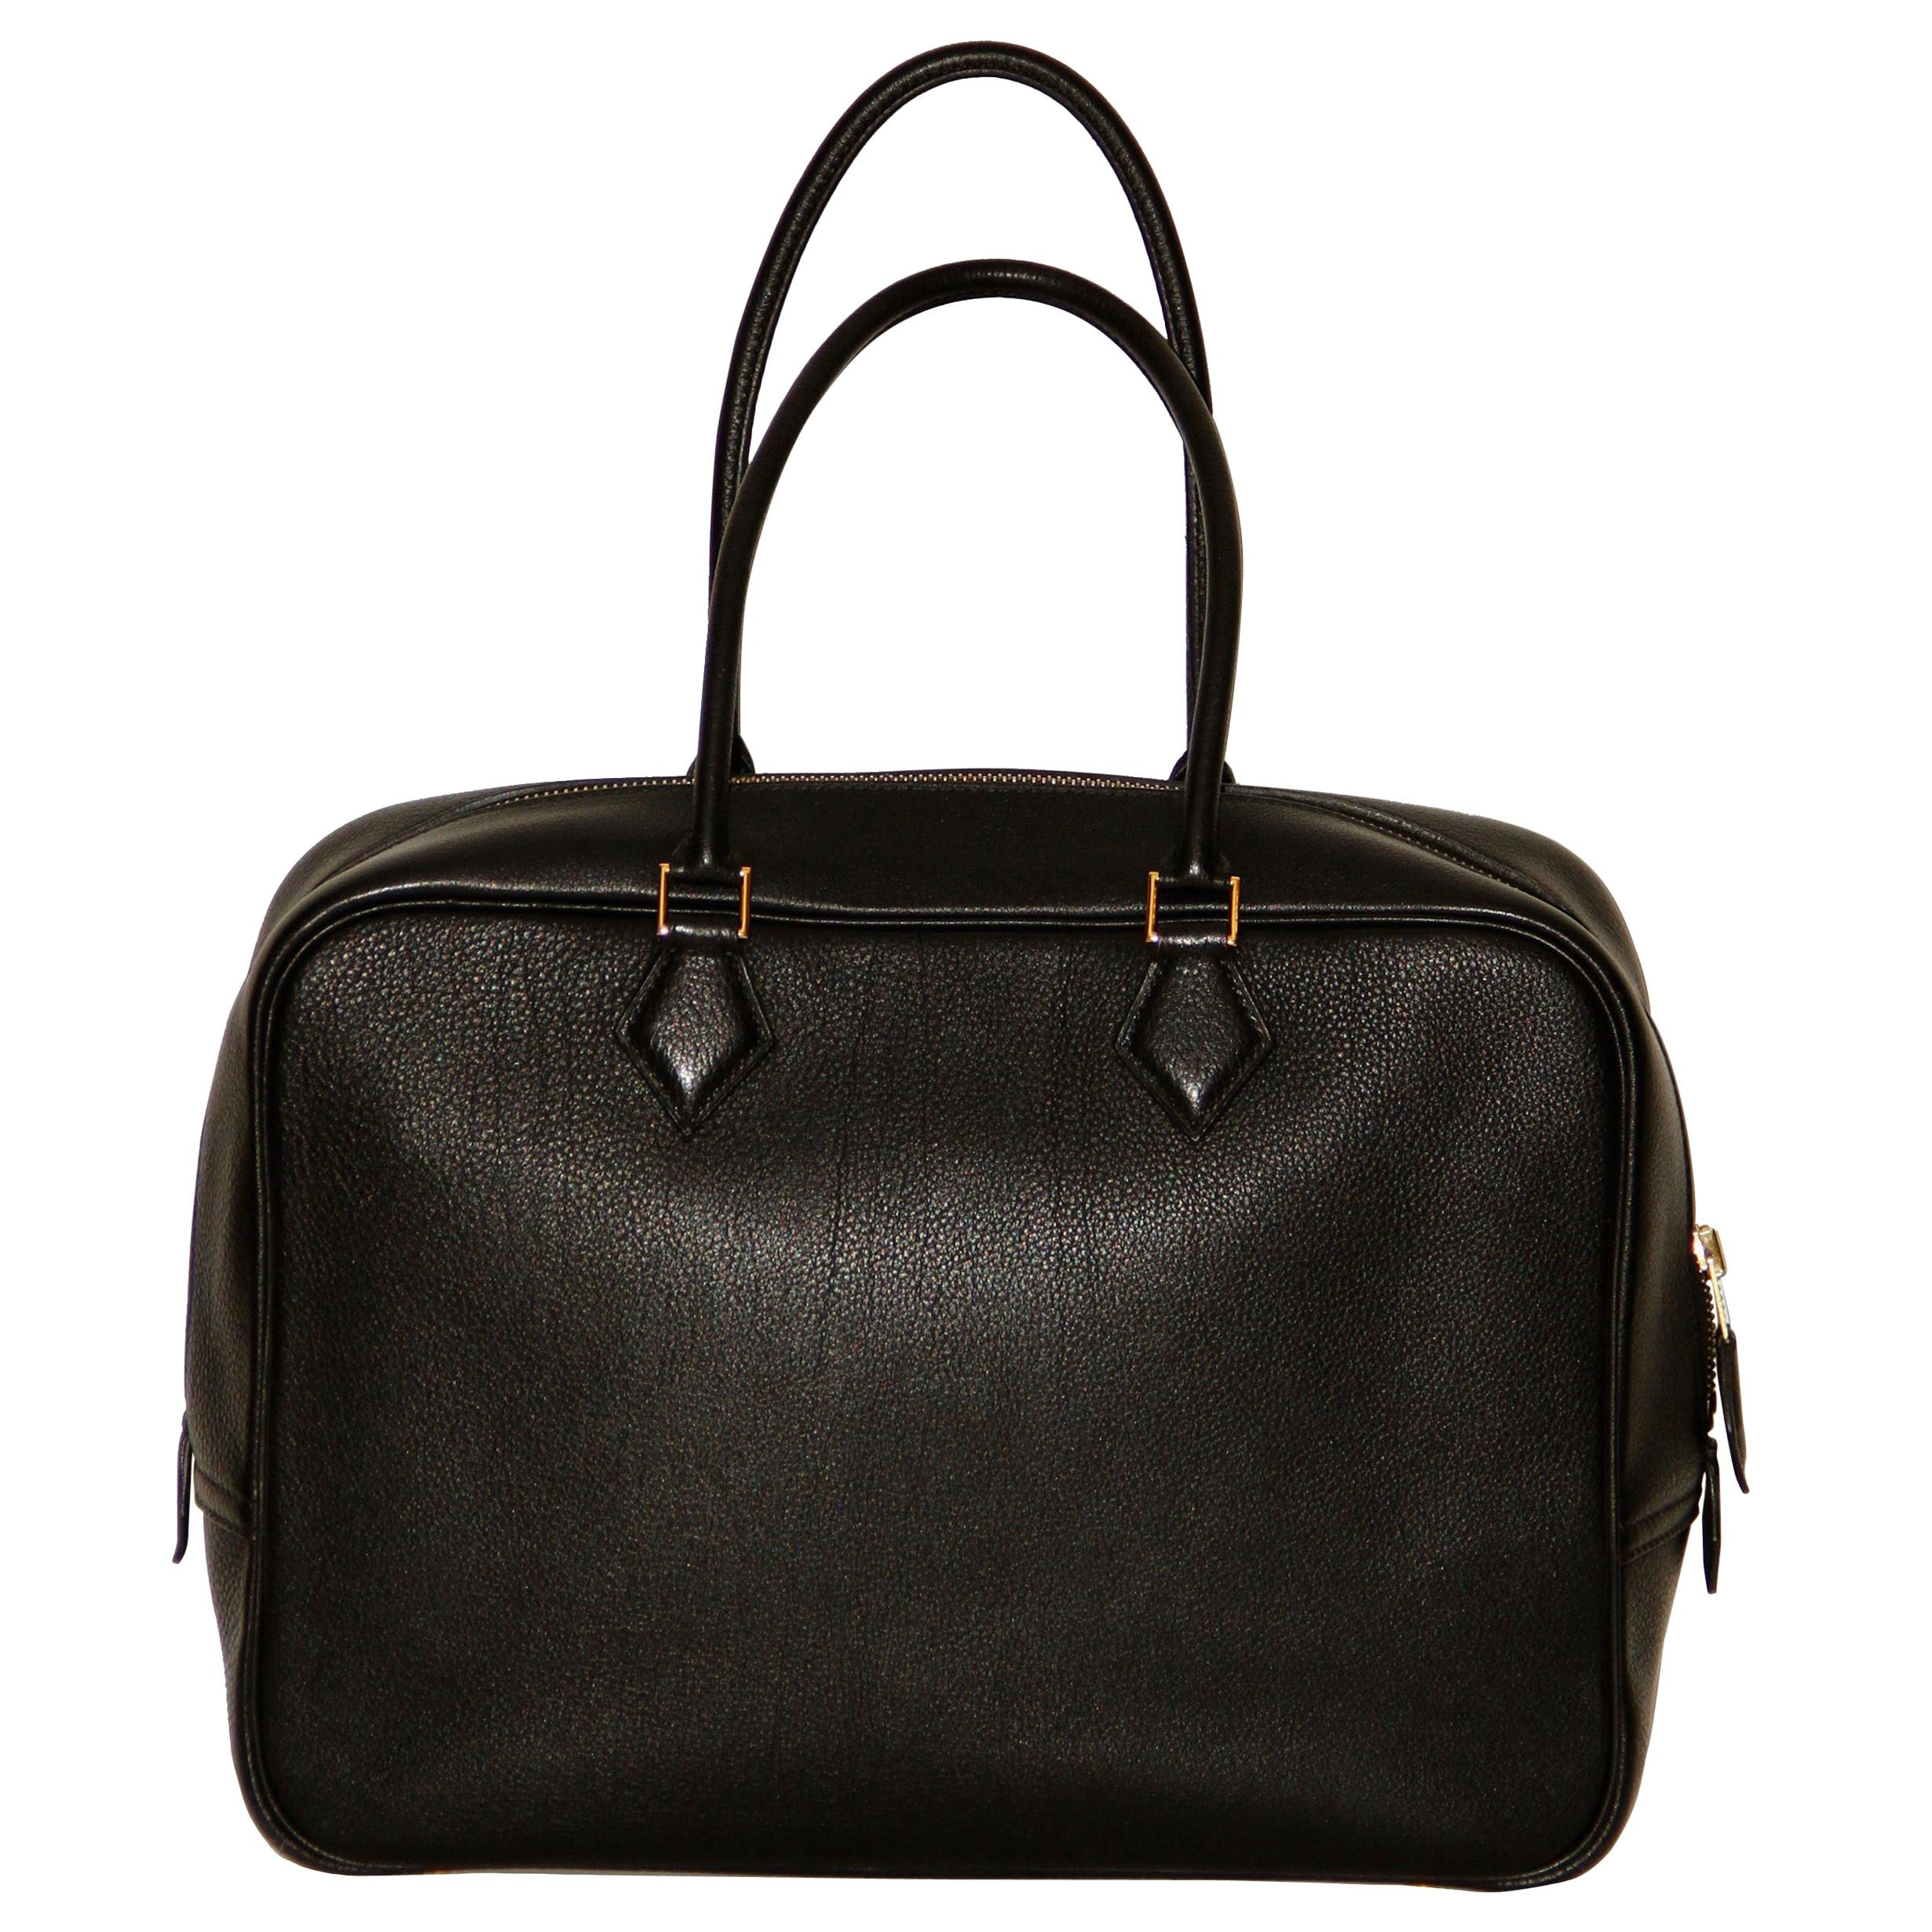 Hermes Black Togo Leather Plume 32